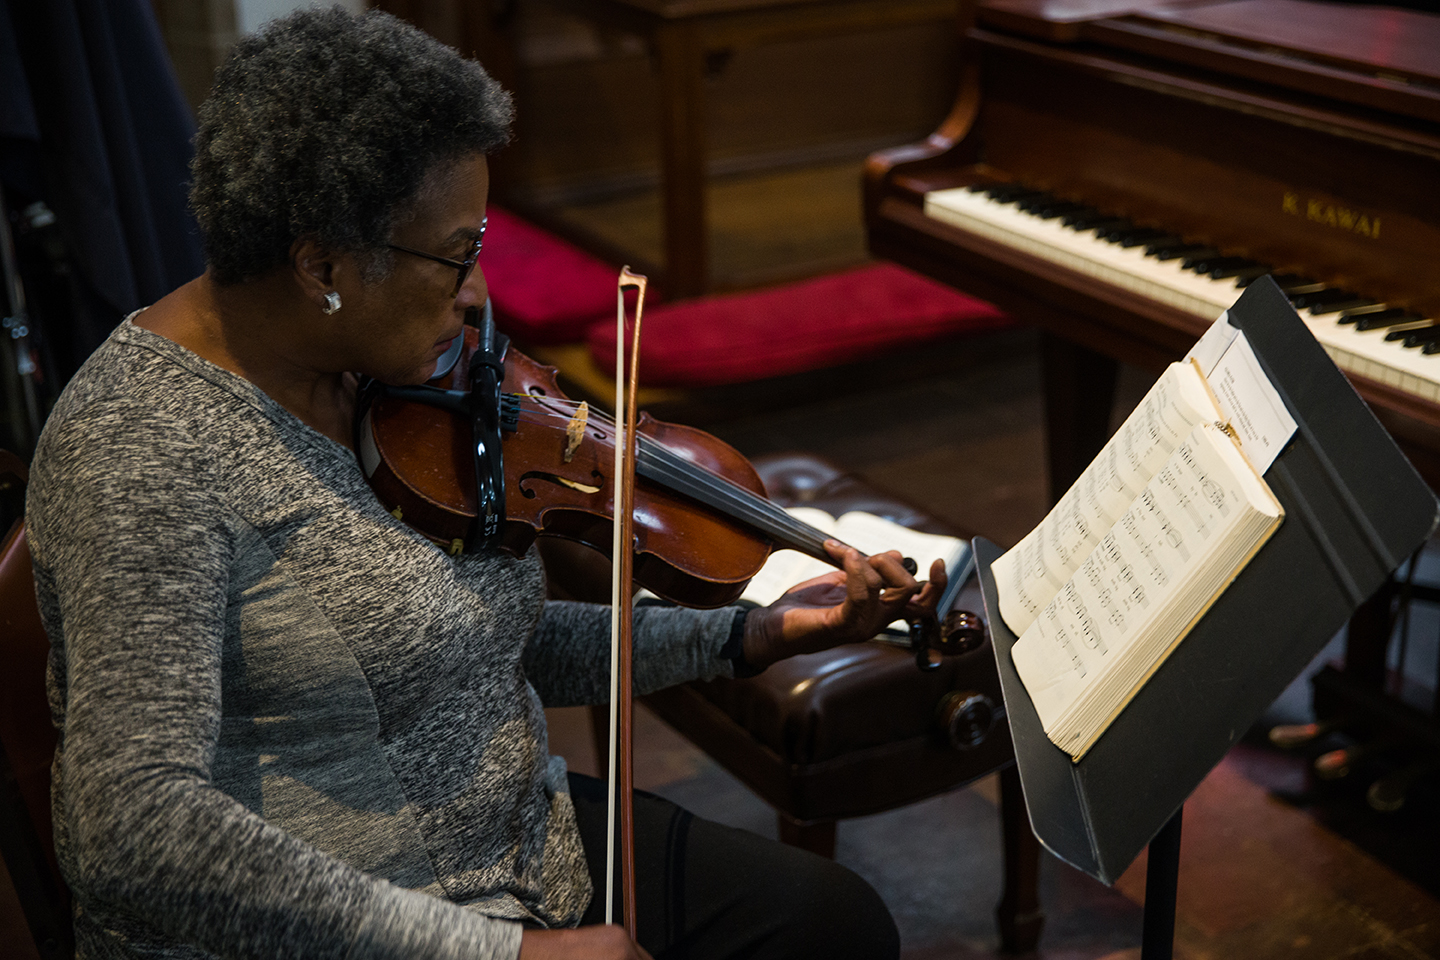 A violinist plays the prelude as worship begins at mckendree umc in Washington d.C.